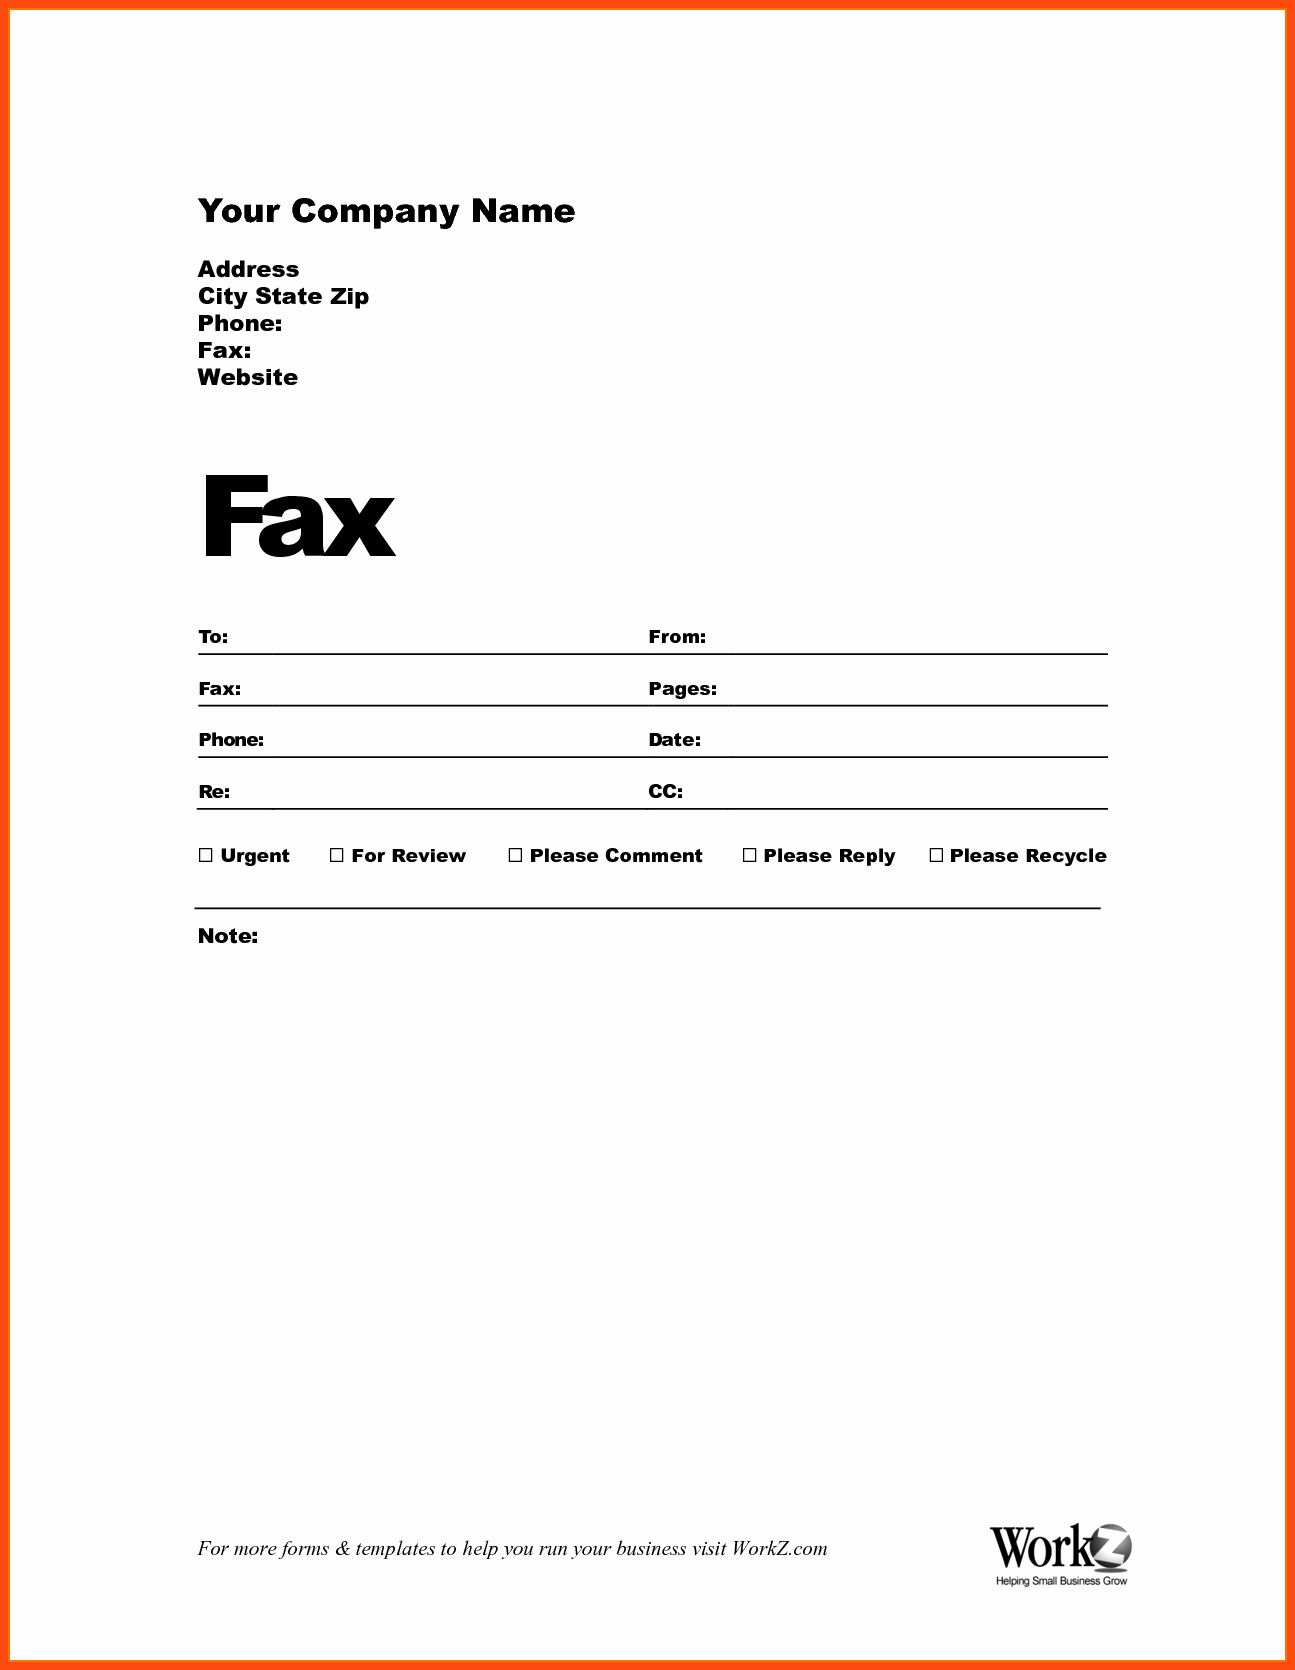 Printable Free Fax Cover Sheet Beautiful How to Fill Out A Fax Cover Sheet